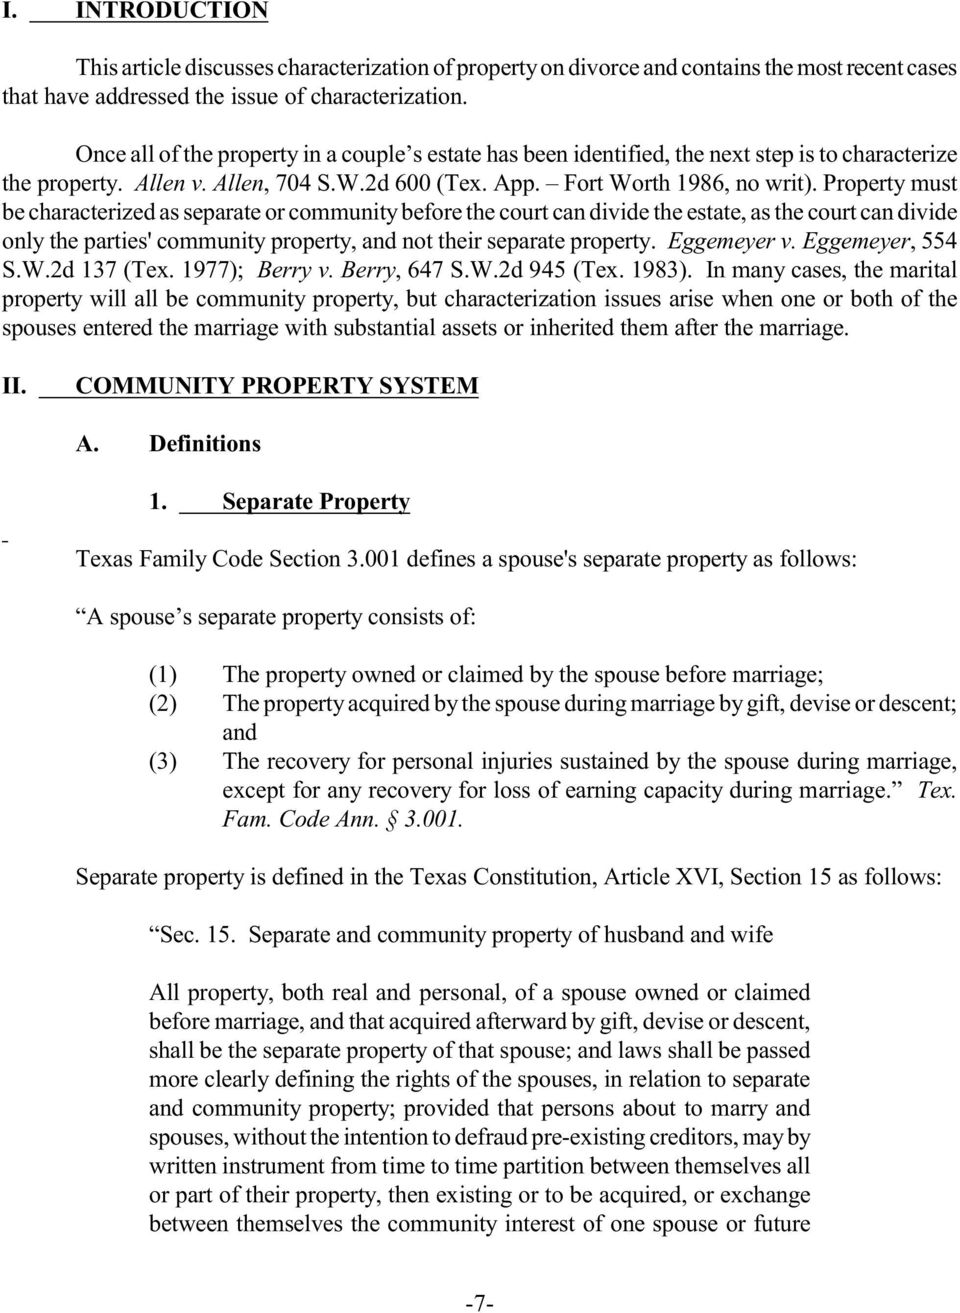 Property mu be characterized as separate or community before e court can divide e eate, as e court can divide only e parties' community property, and not eir separate property. Eggemeyer v.